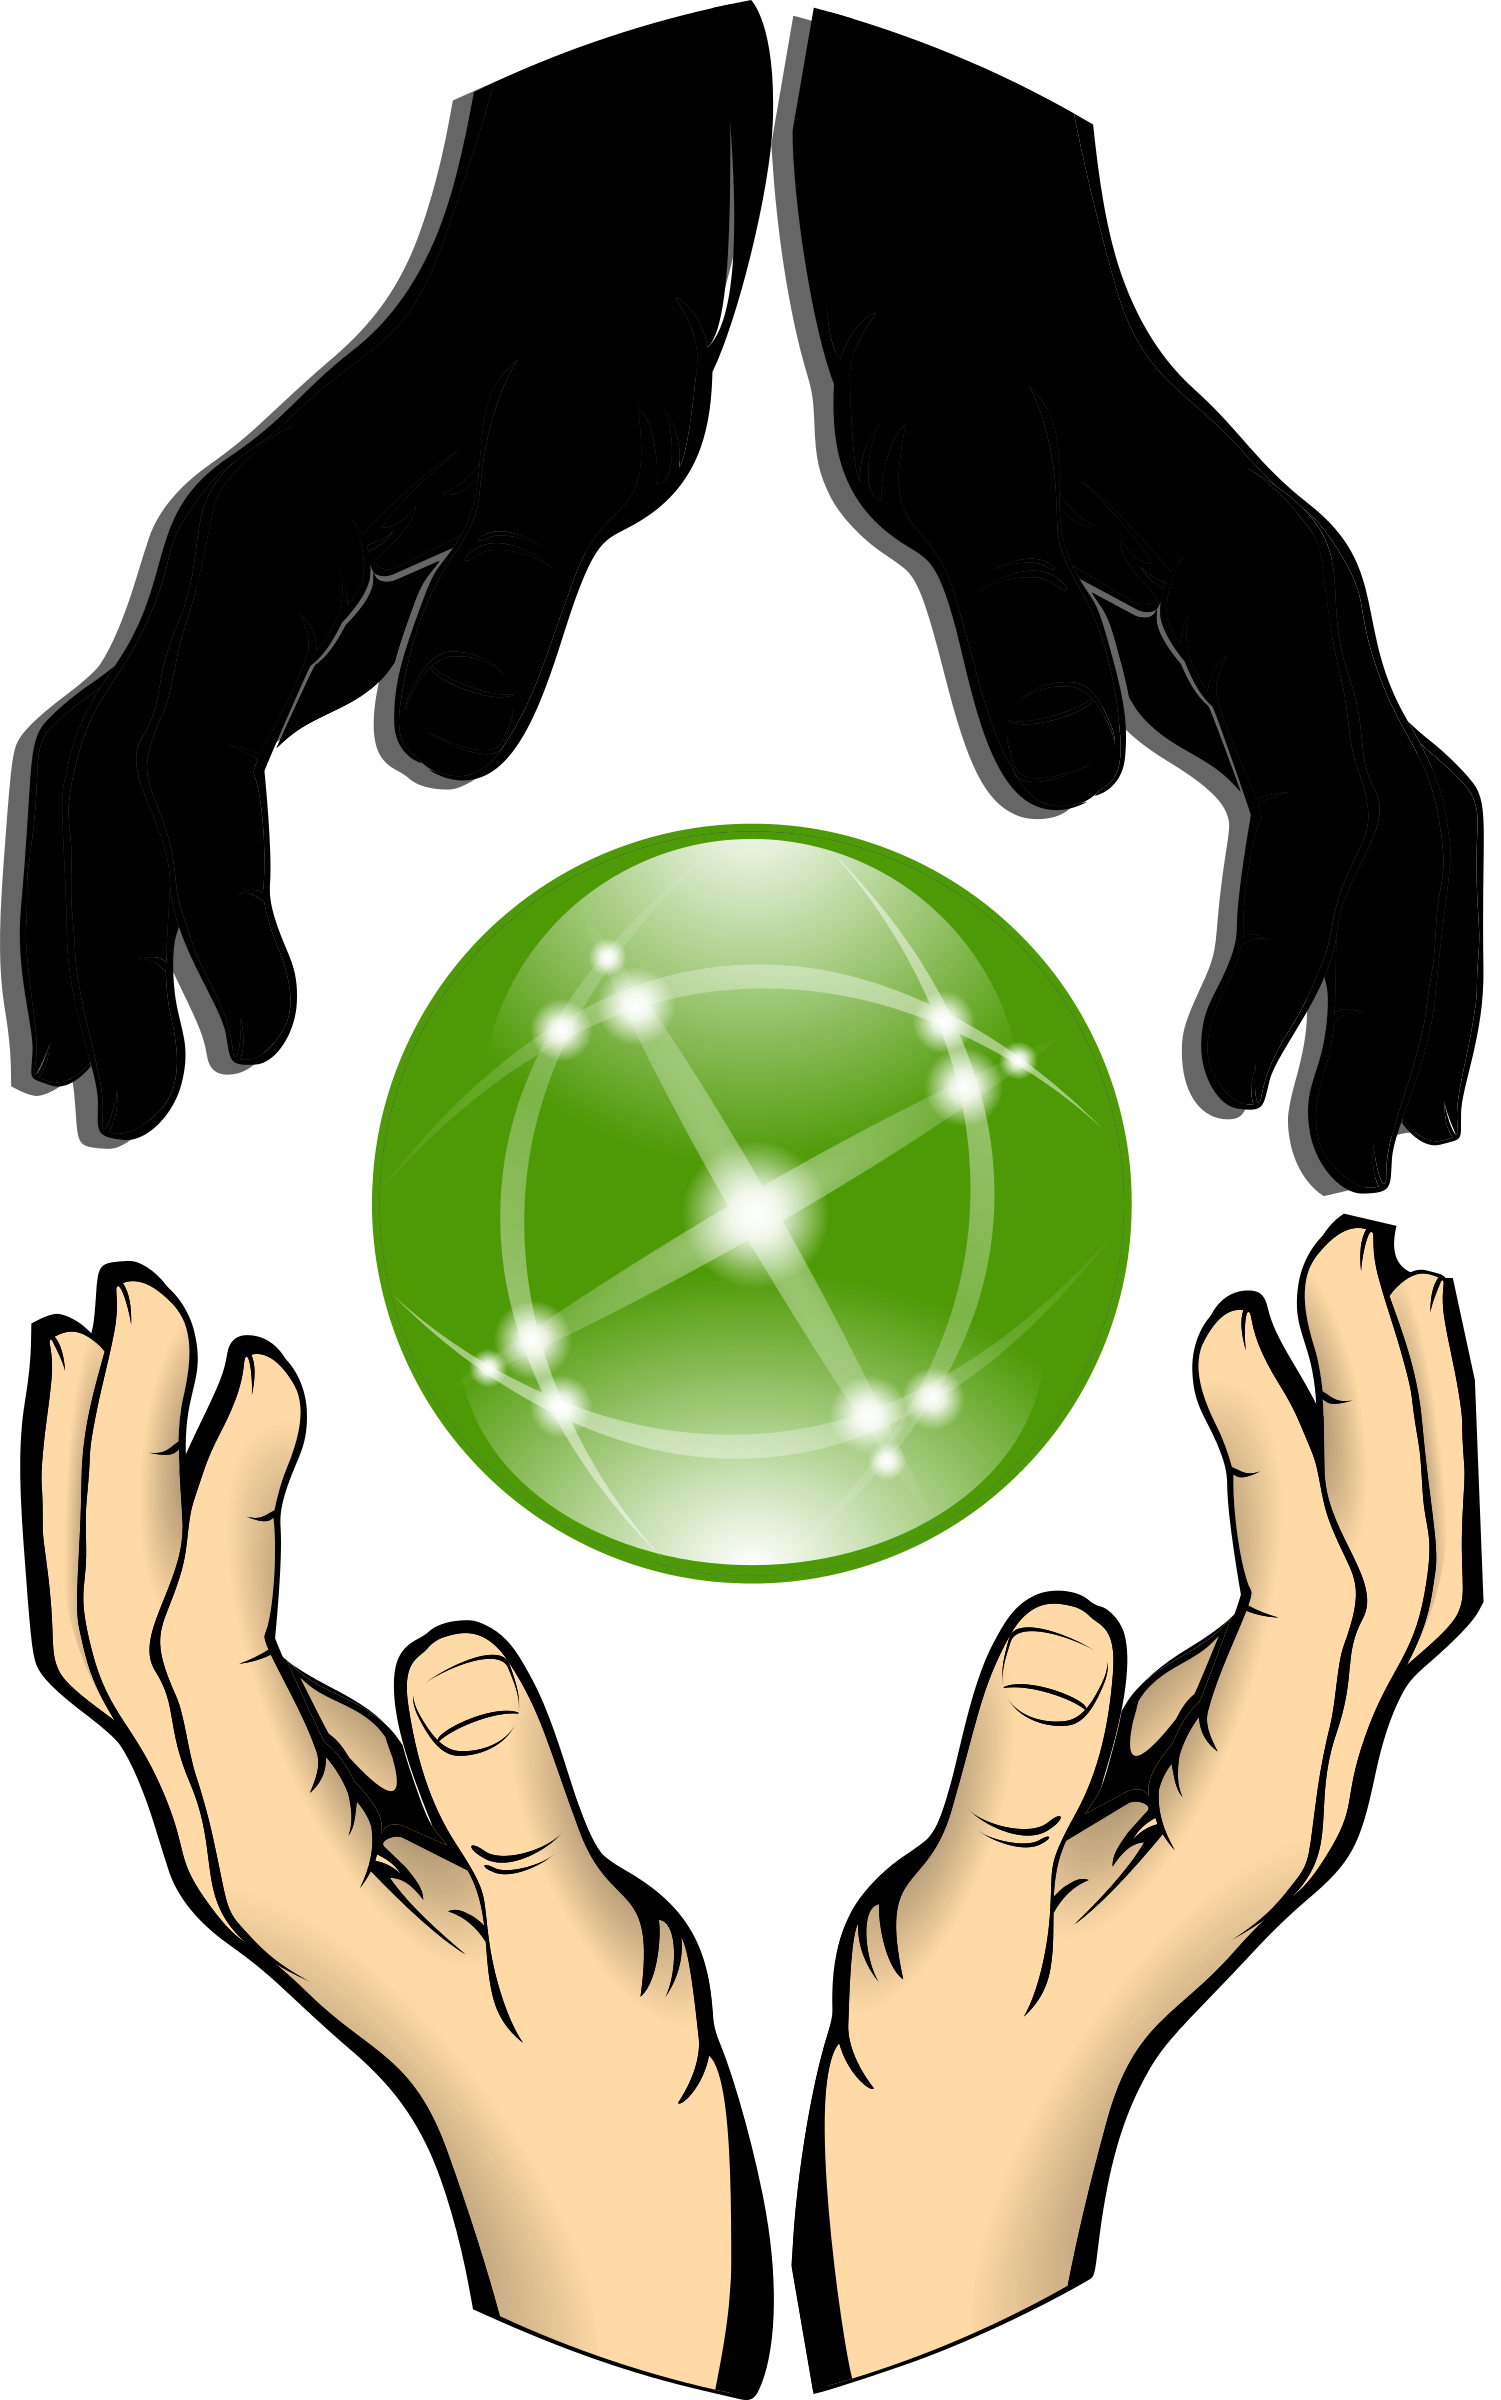 Freedom clipart hands. Forming unity big image